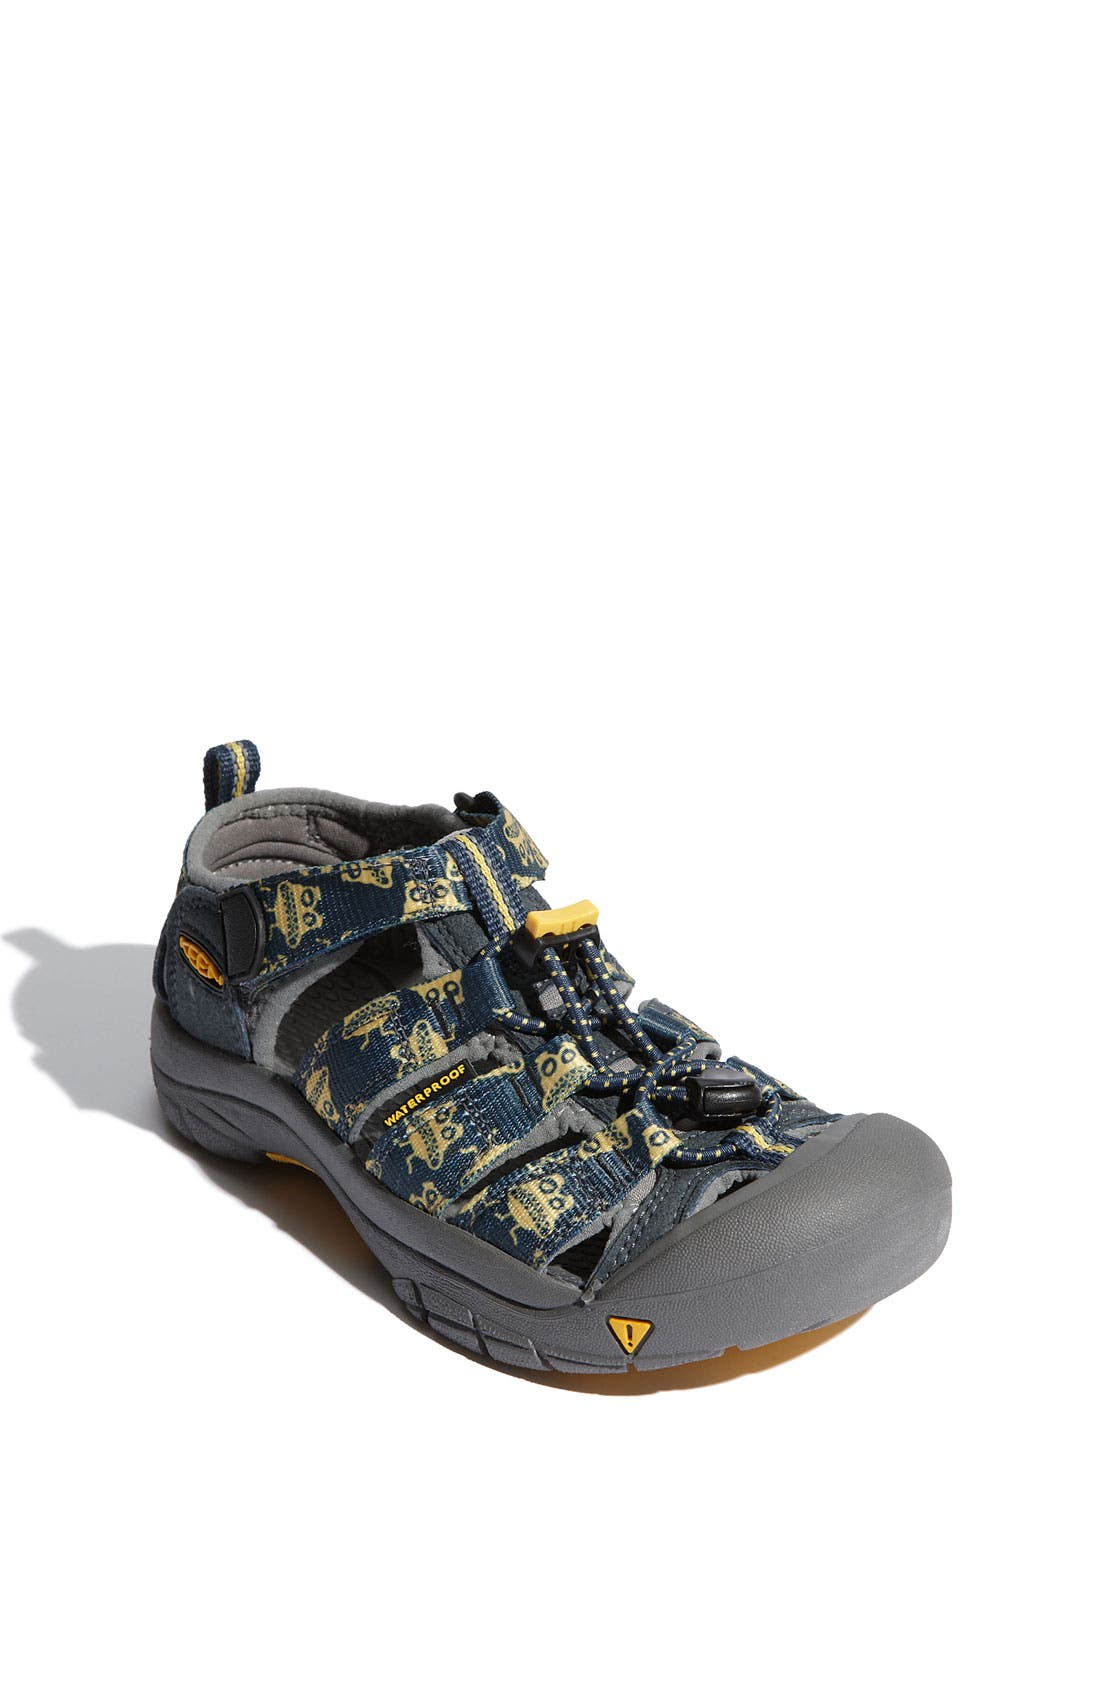 Alternate Image 1 Selected - Keen 'Newport H2' Waterproof Sandal (Toddler, Little Kid & Big Kid)